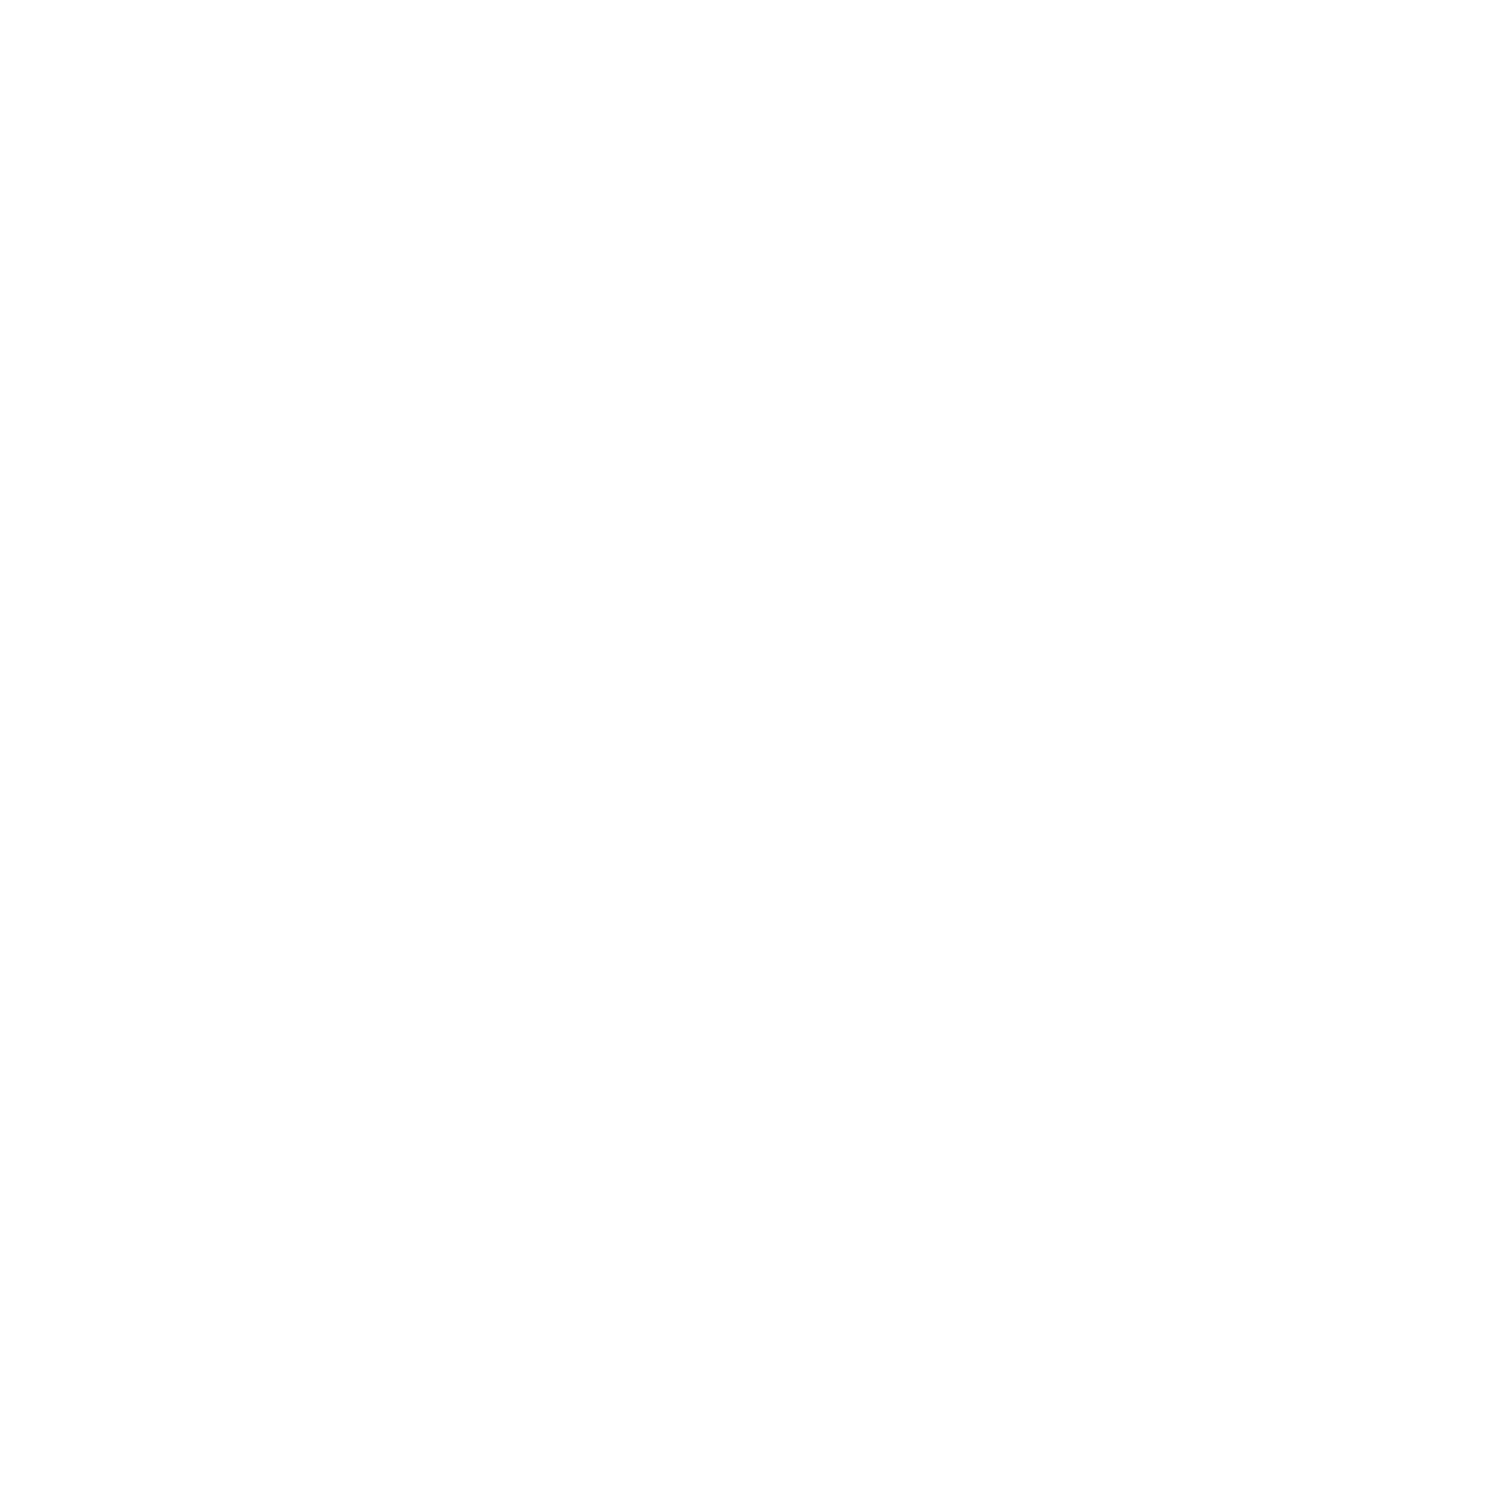 BUFFALO SOLDIERS OF THE PACIFIC NORTHWEST